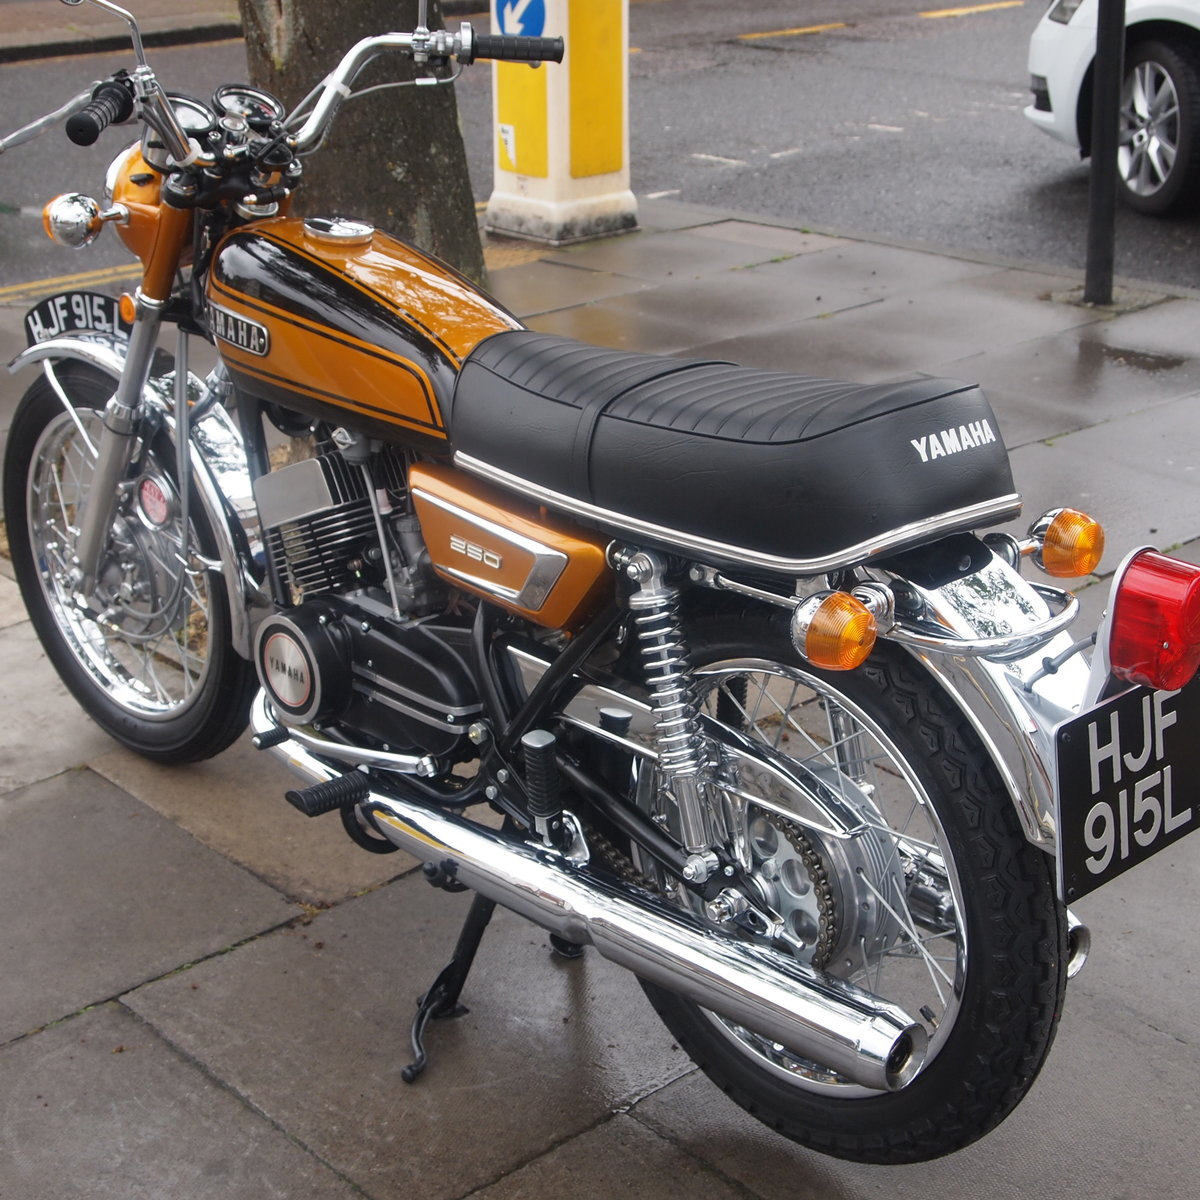 1973 Yamaha YDS7 250 In Concours d'Elegence Condition, BEST. SOLD (picture 6 of 6)